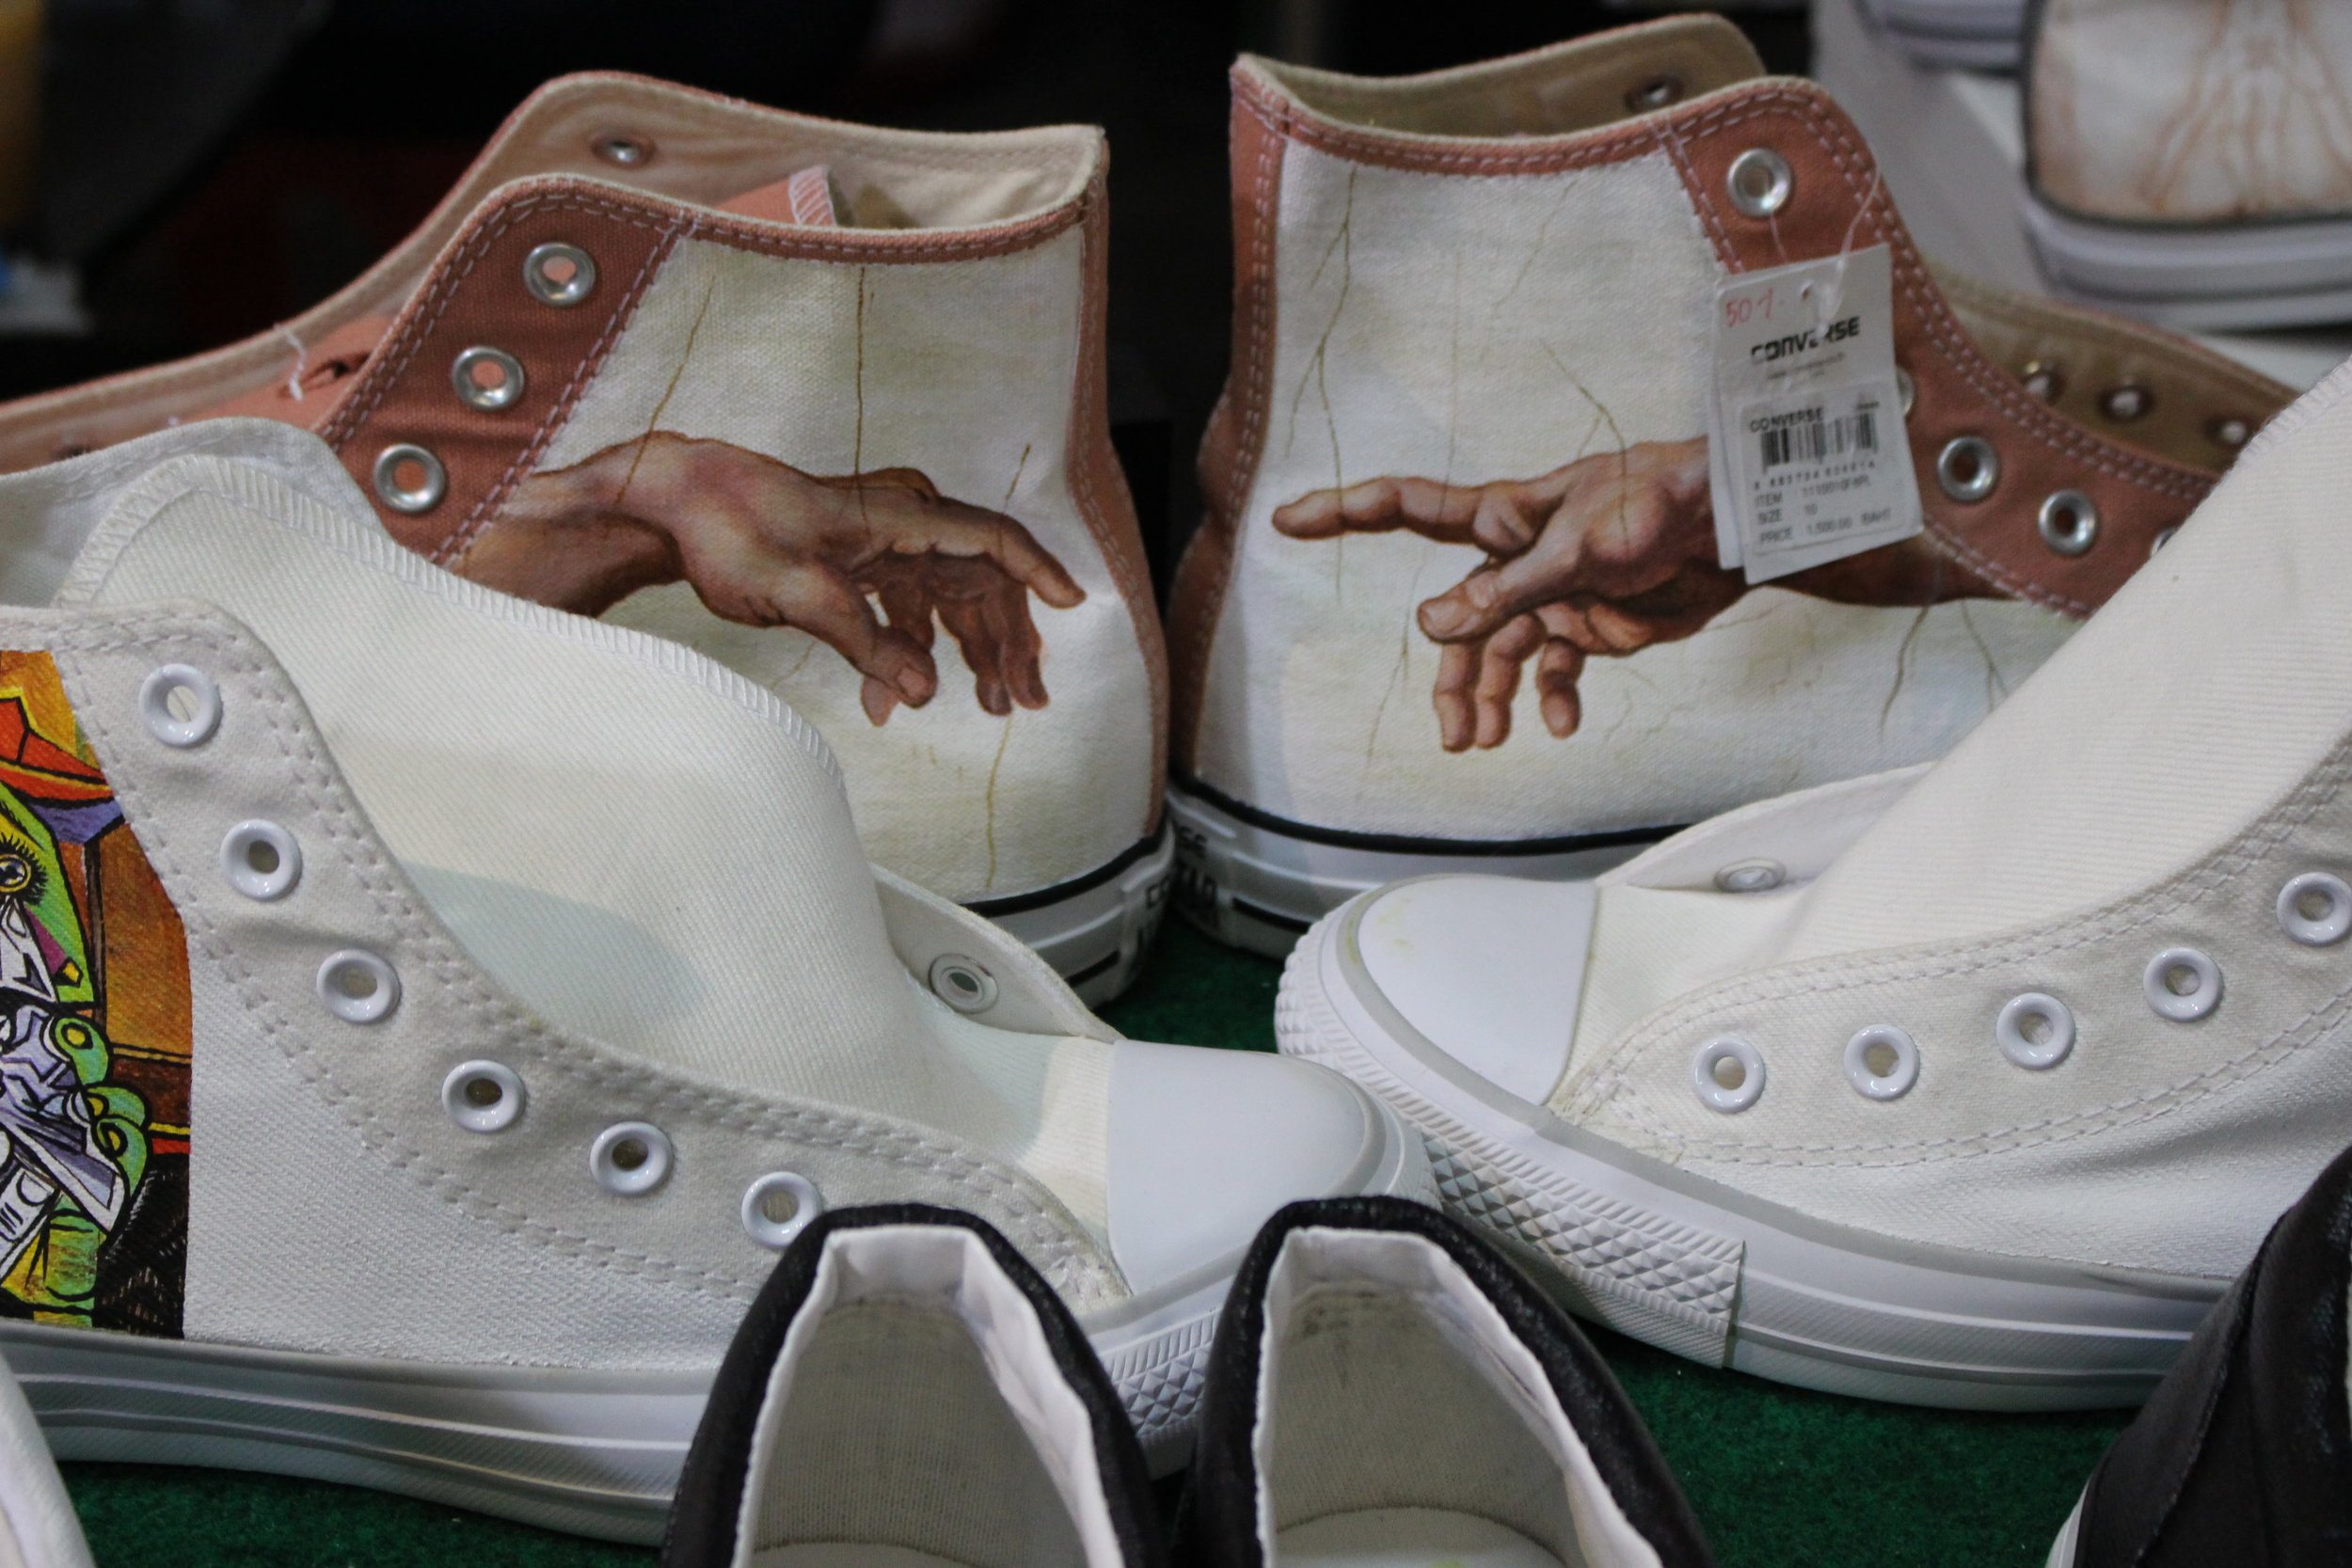 Michelangelo's The Creation of Adam on a pair of Converse high tops